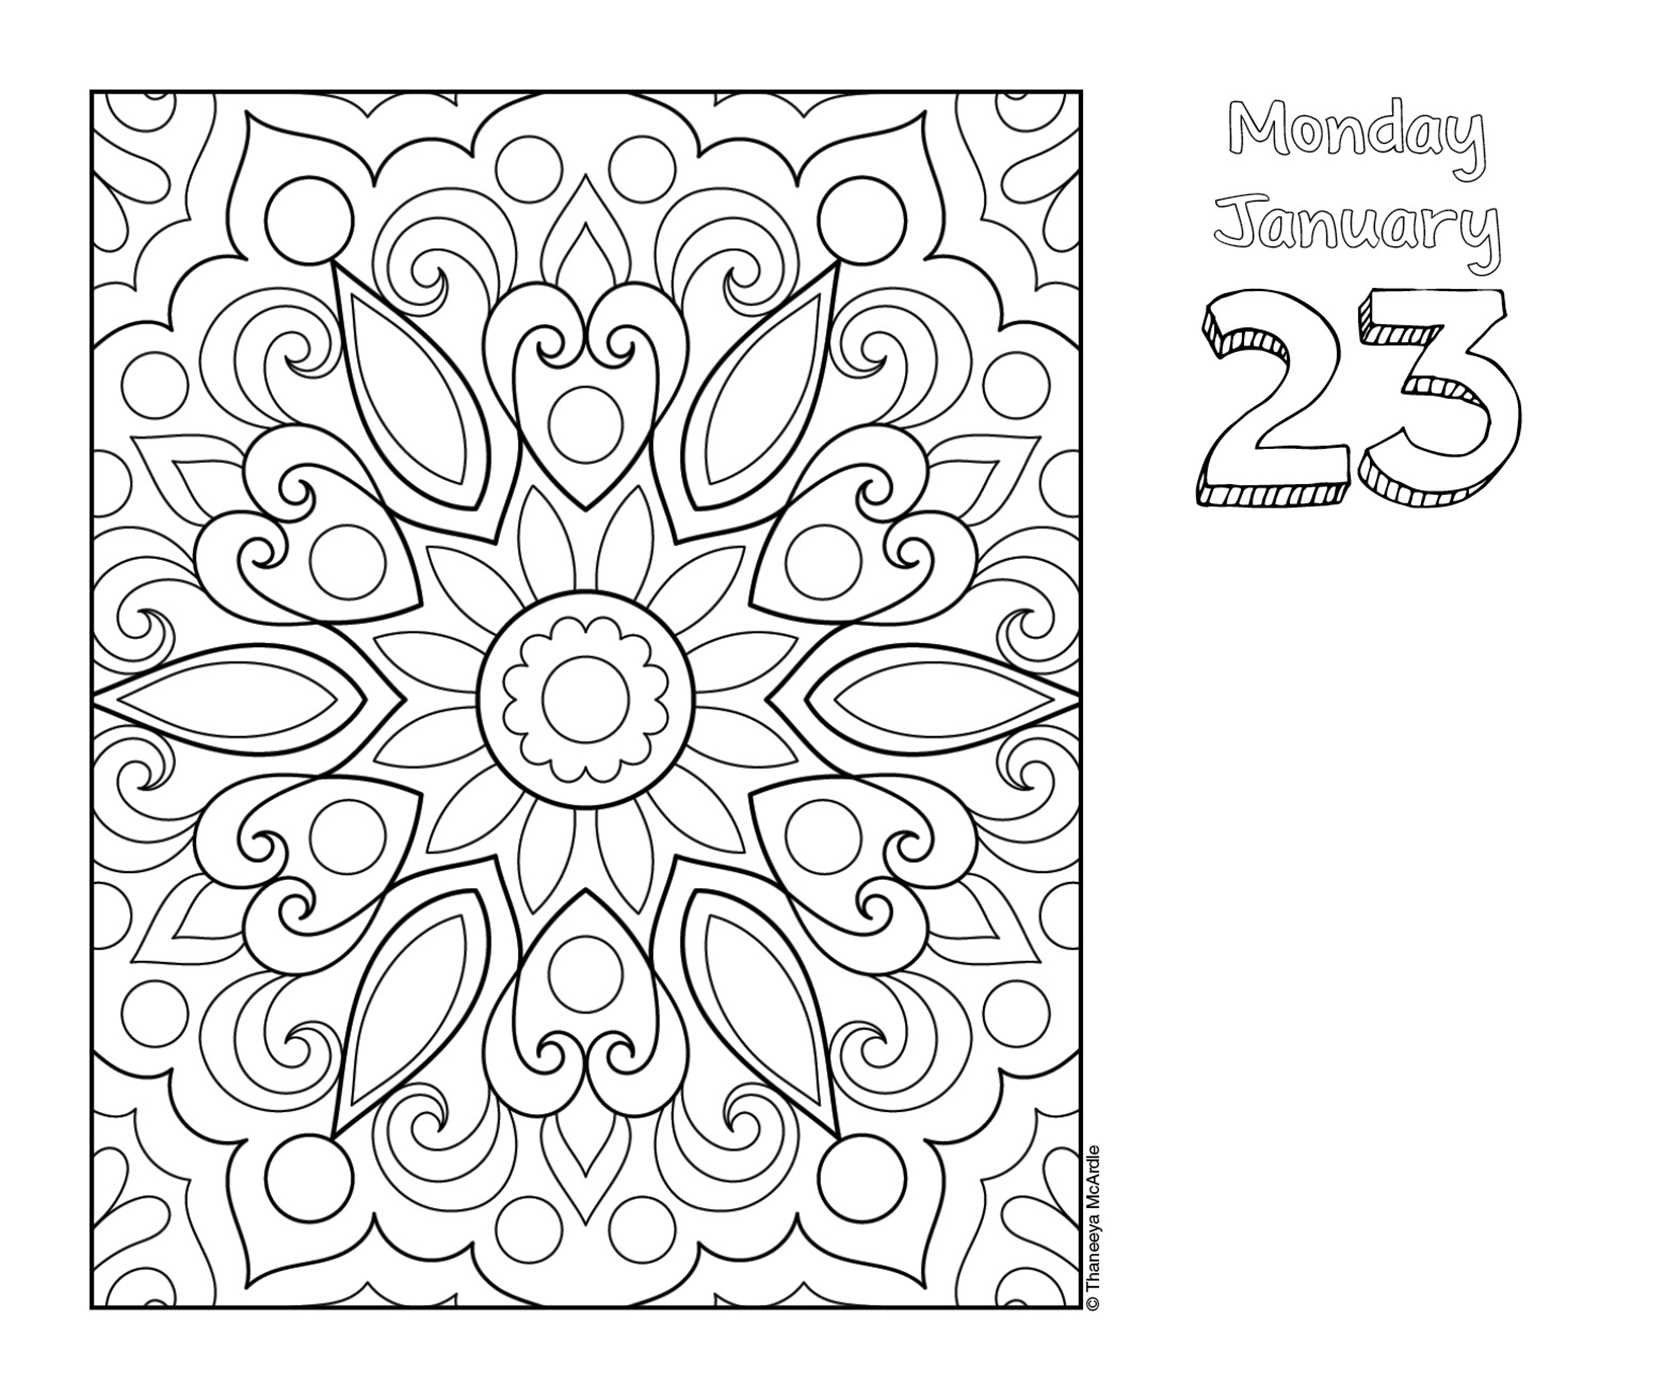 90 View Image Found On August Calendar Coloring Page